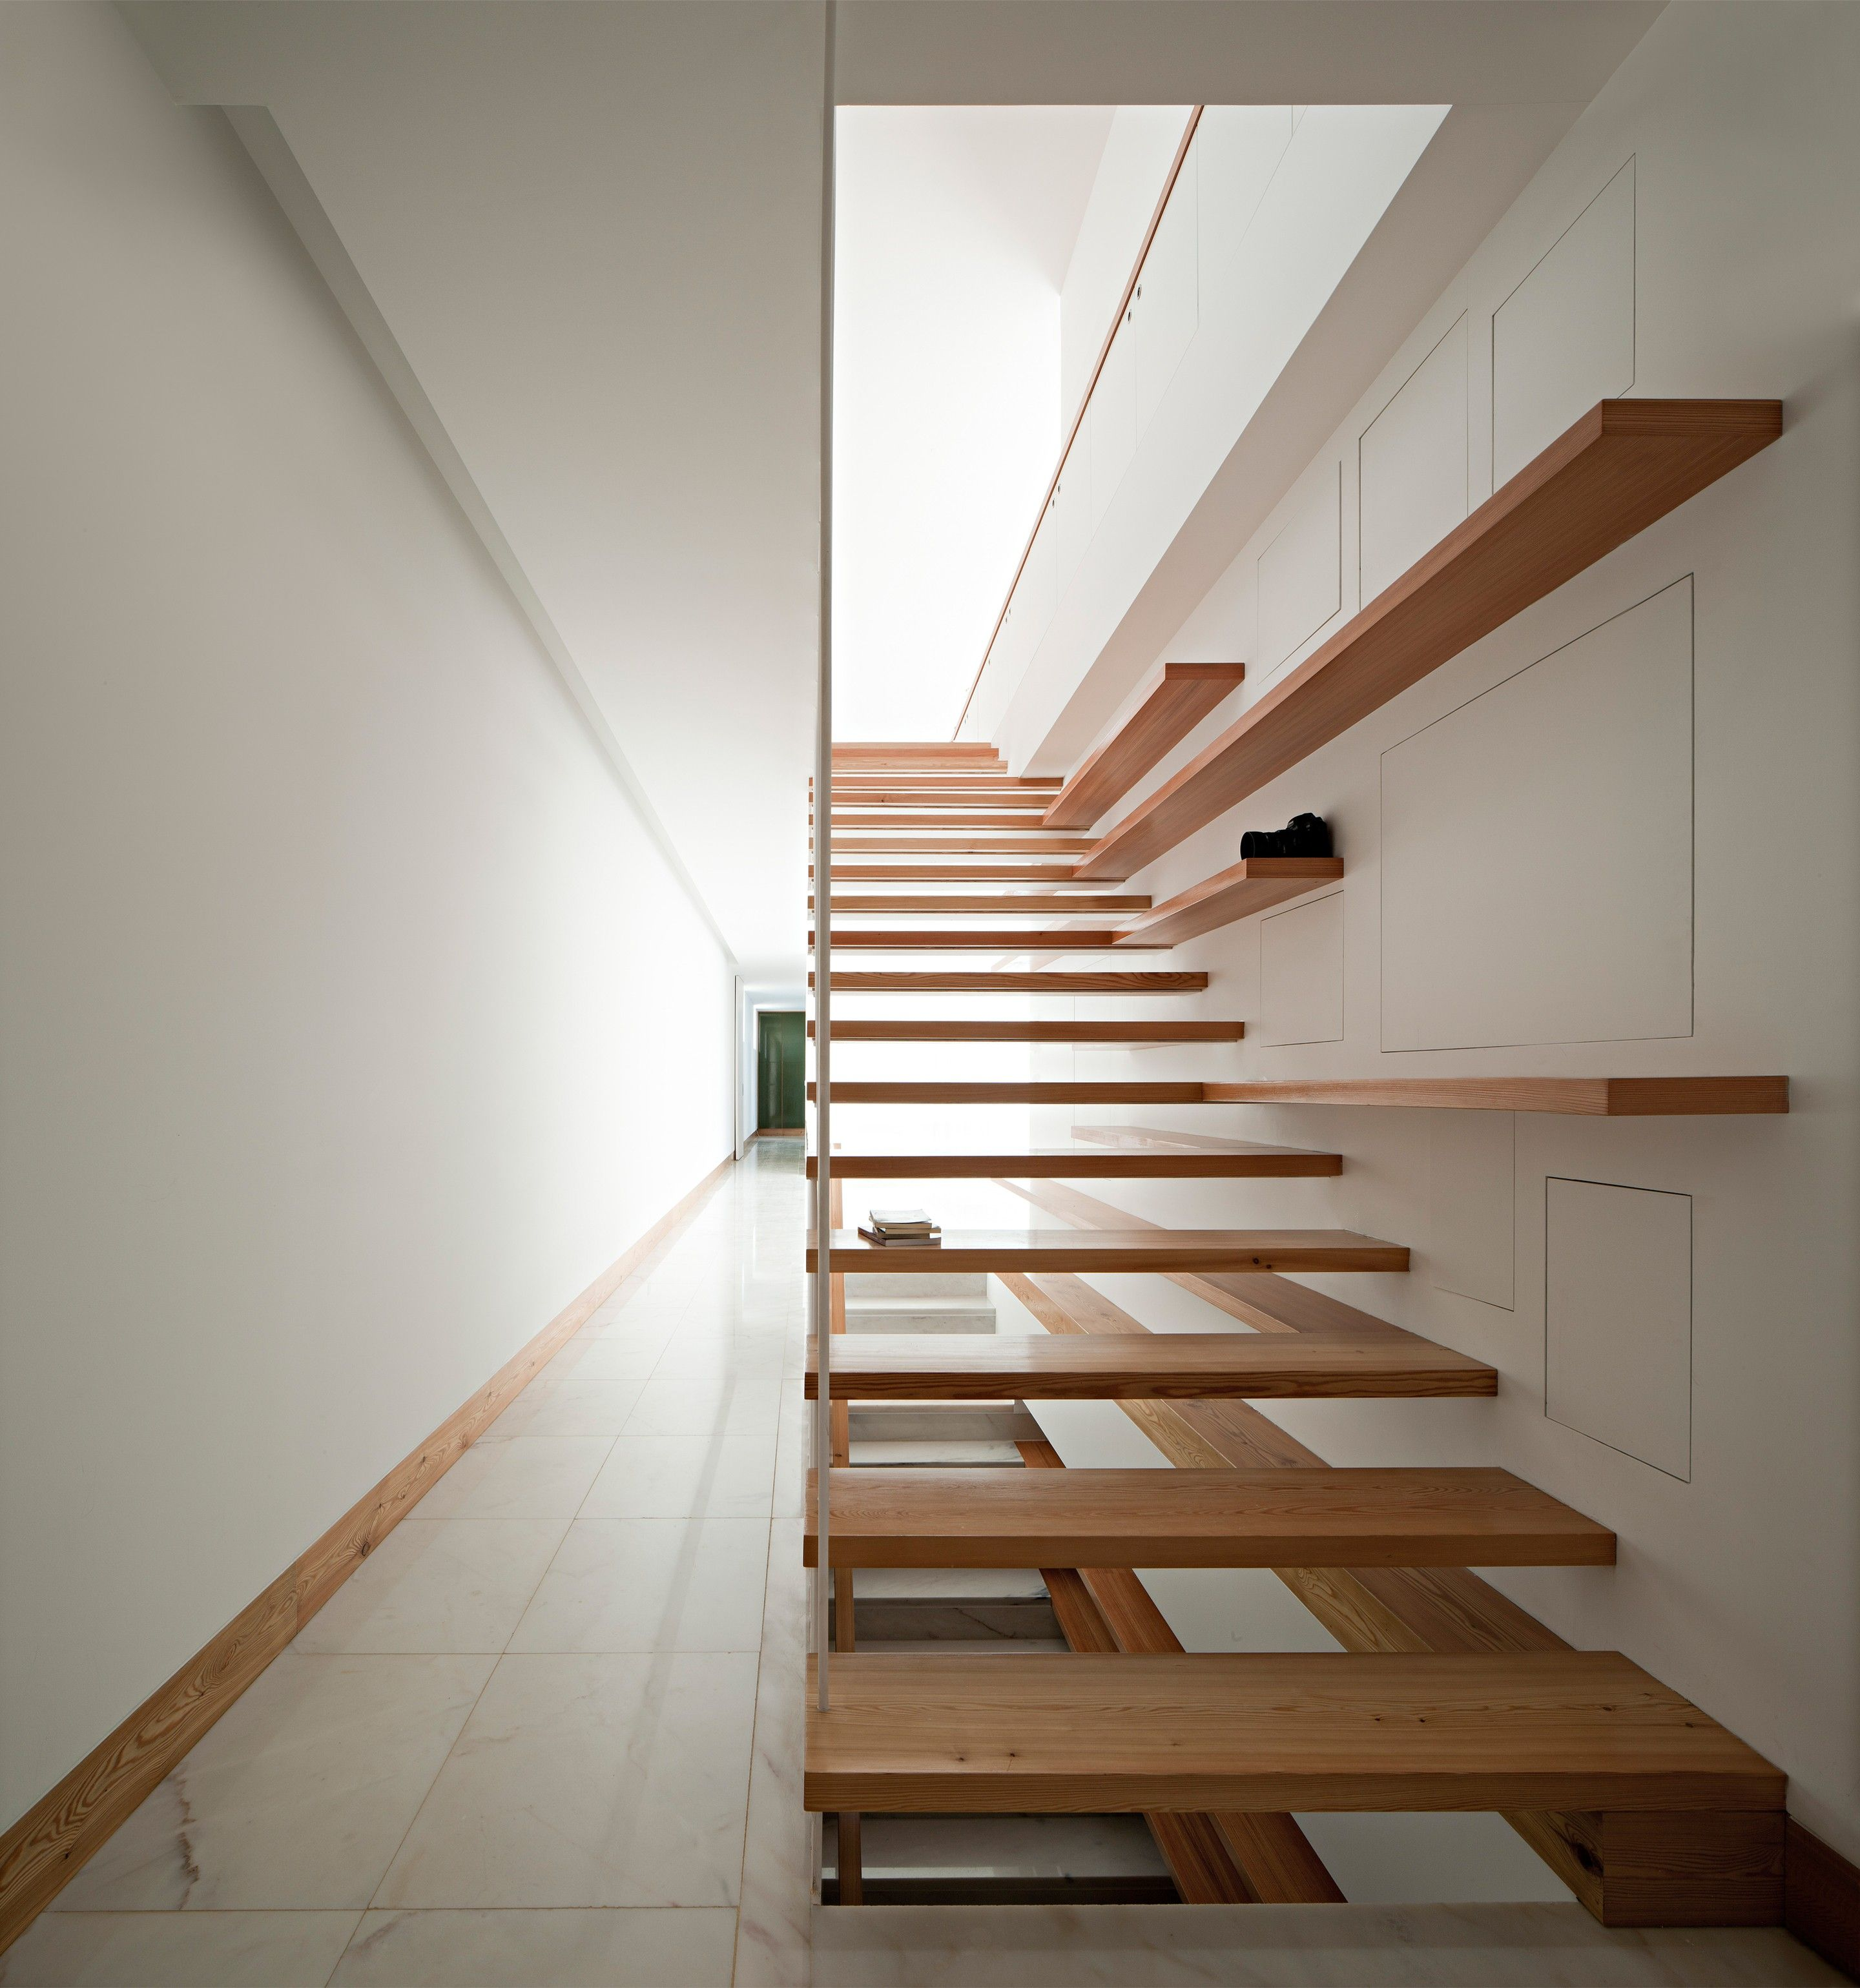 PHYD arquitectura - Project - House in Moreira - Image-2